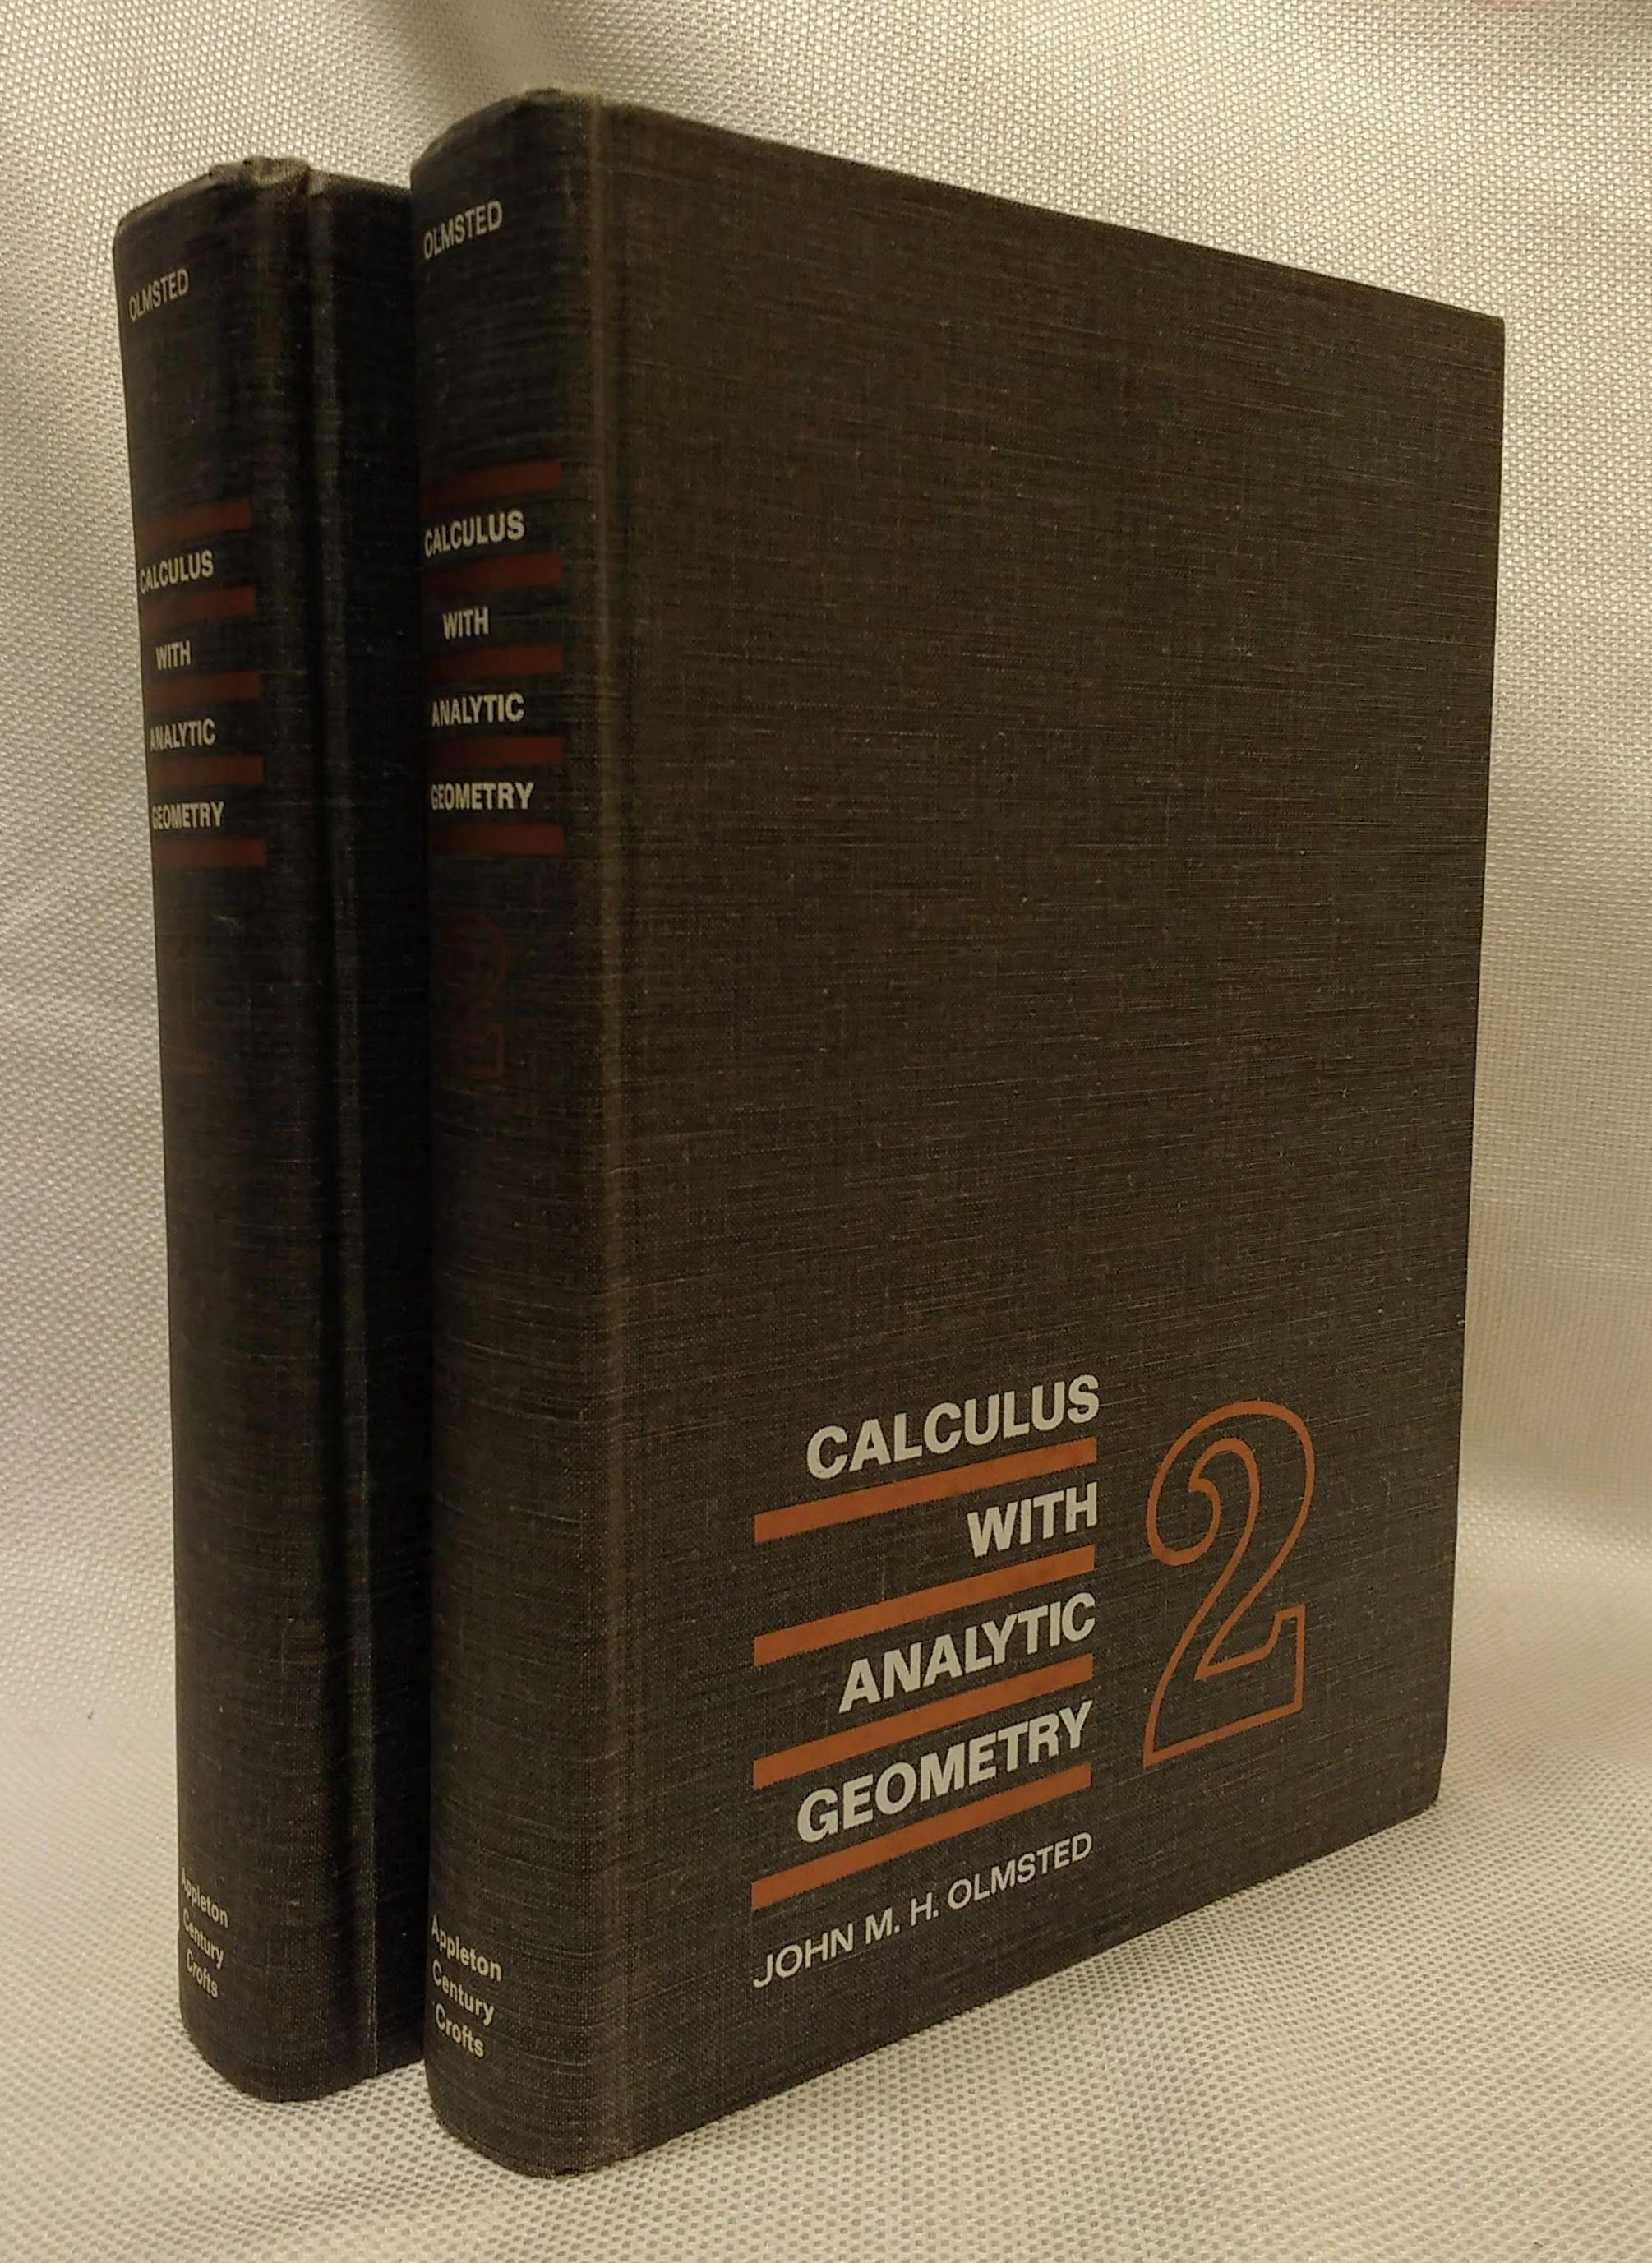 Calculus With Analytic Geometry, TWO VOLUMES. John M.H. Olmsted. 1966 Edition, Olmsted, John M.H.